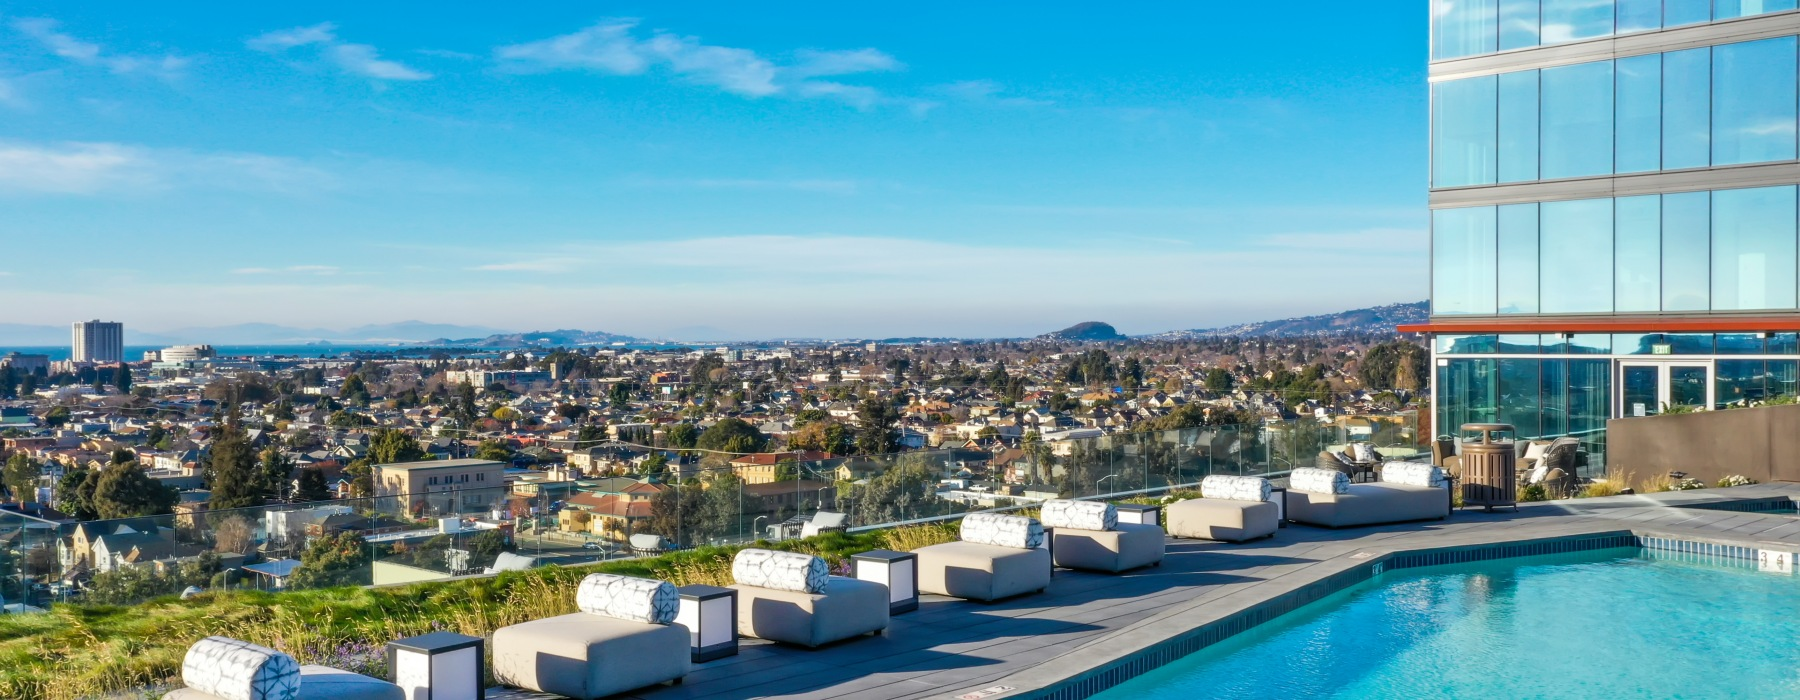 Landscape View from the pool of The Skylyne at Temescal. Clear blue skies with the cityscape views Berkeley and the bay.